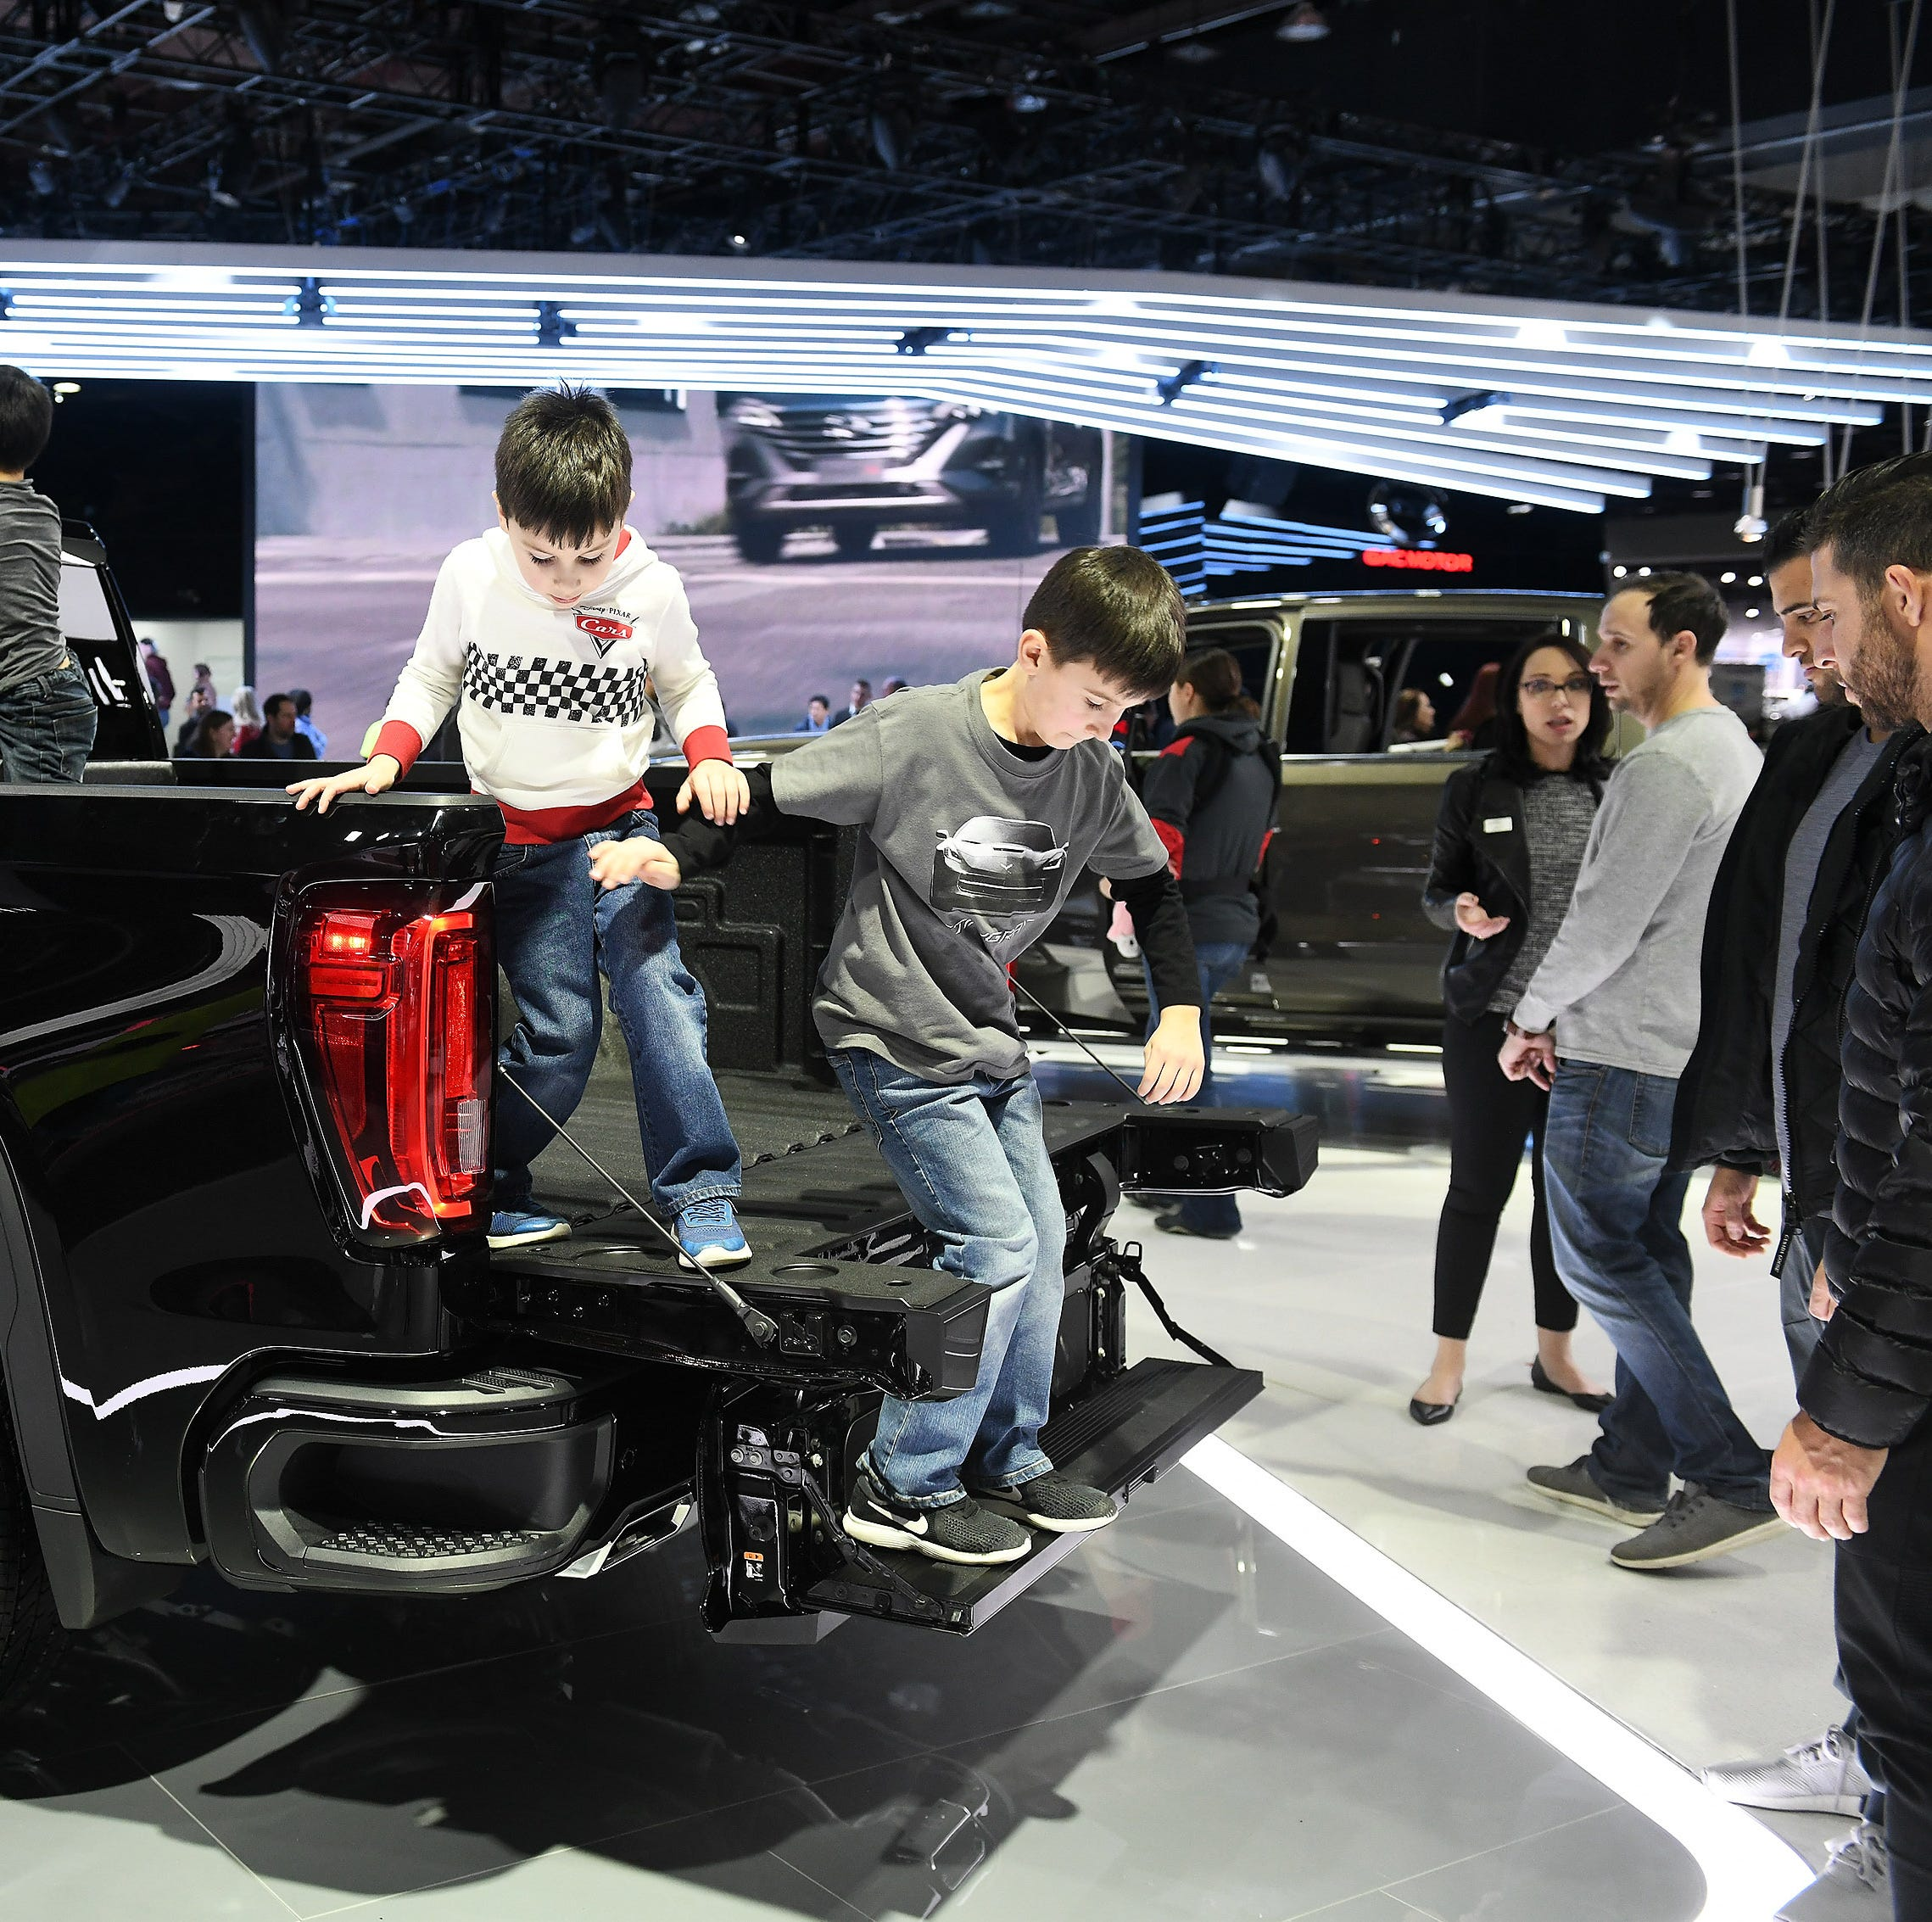 Auto show guests fight cold, look forward to June move